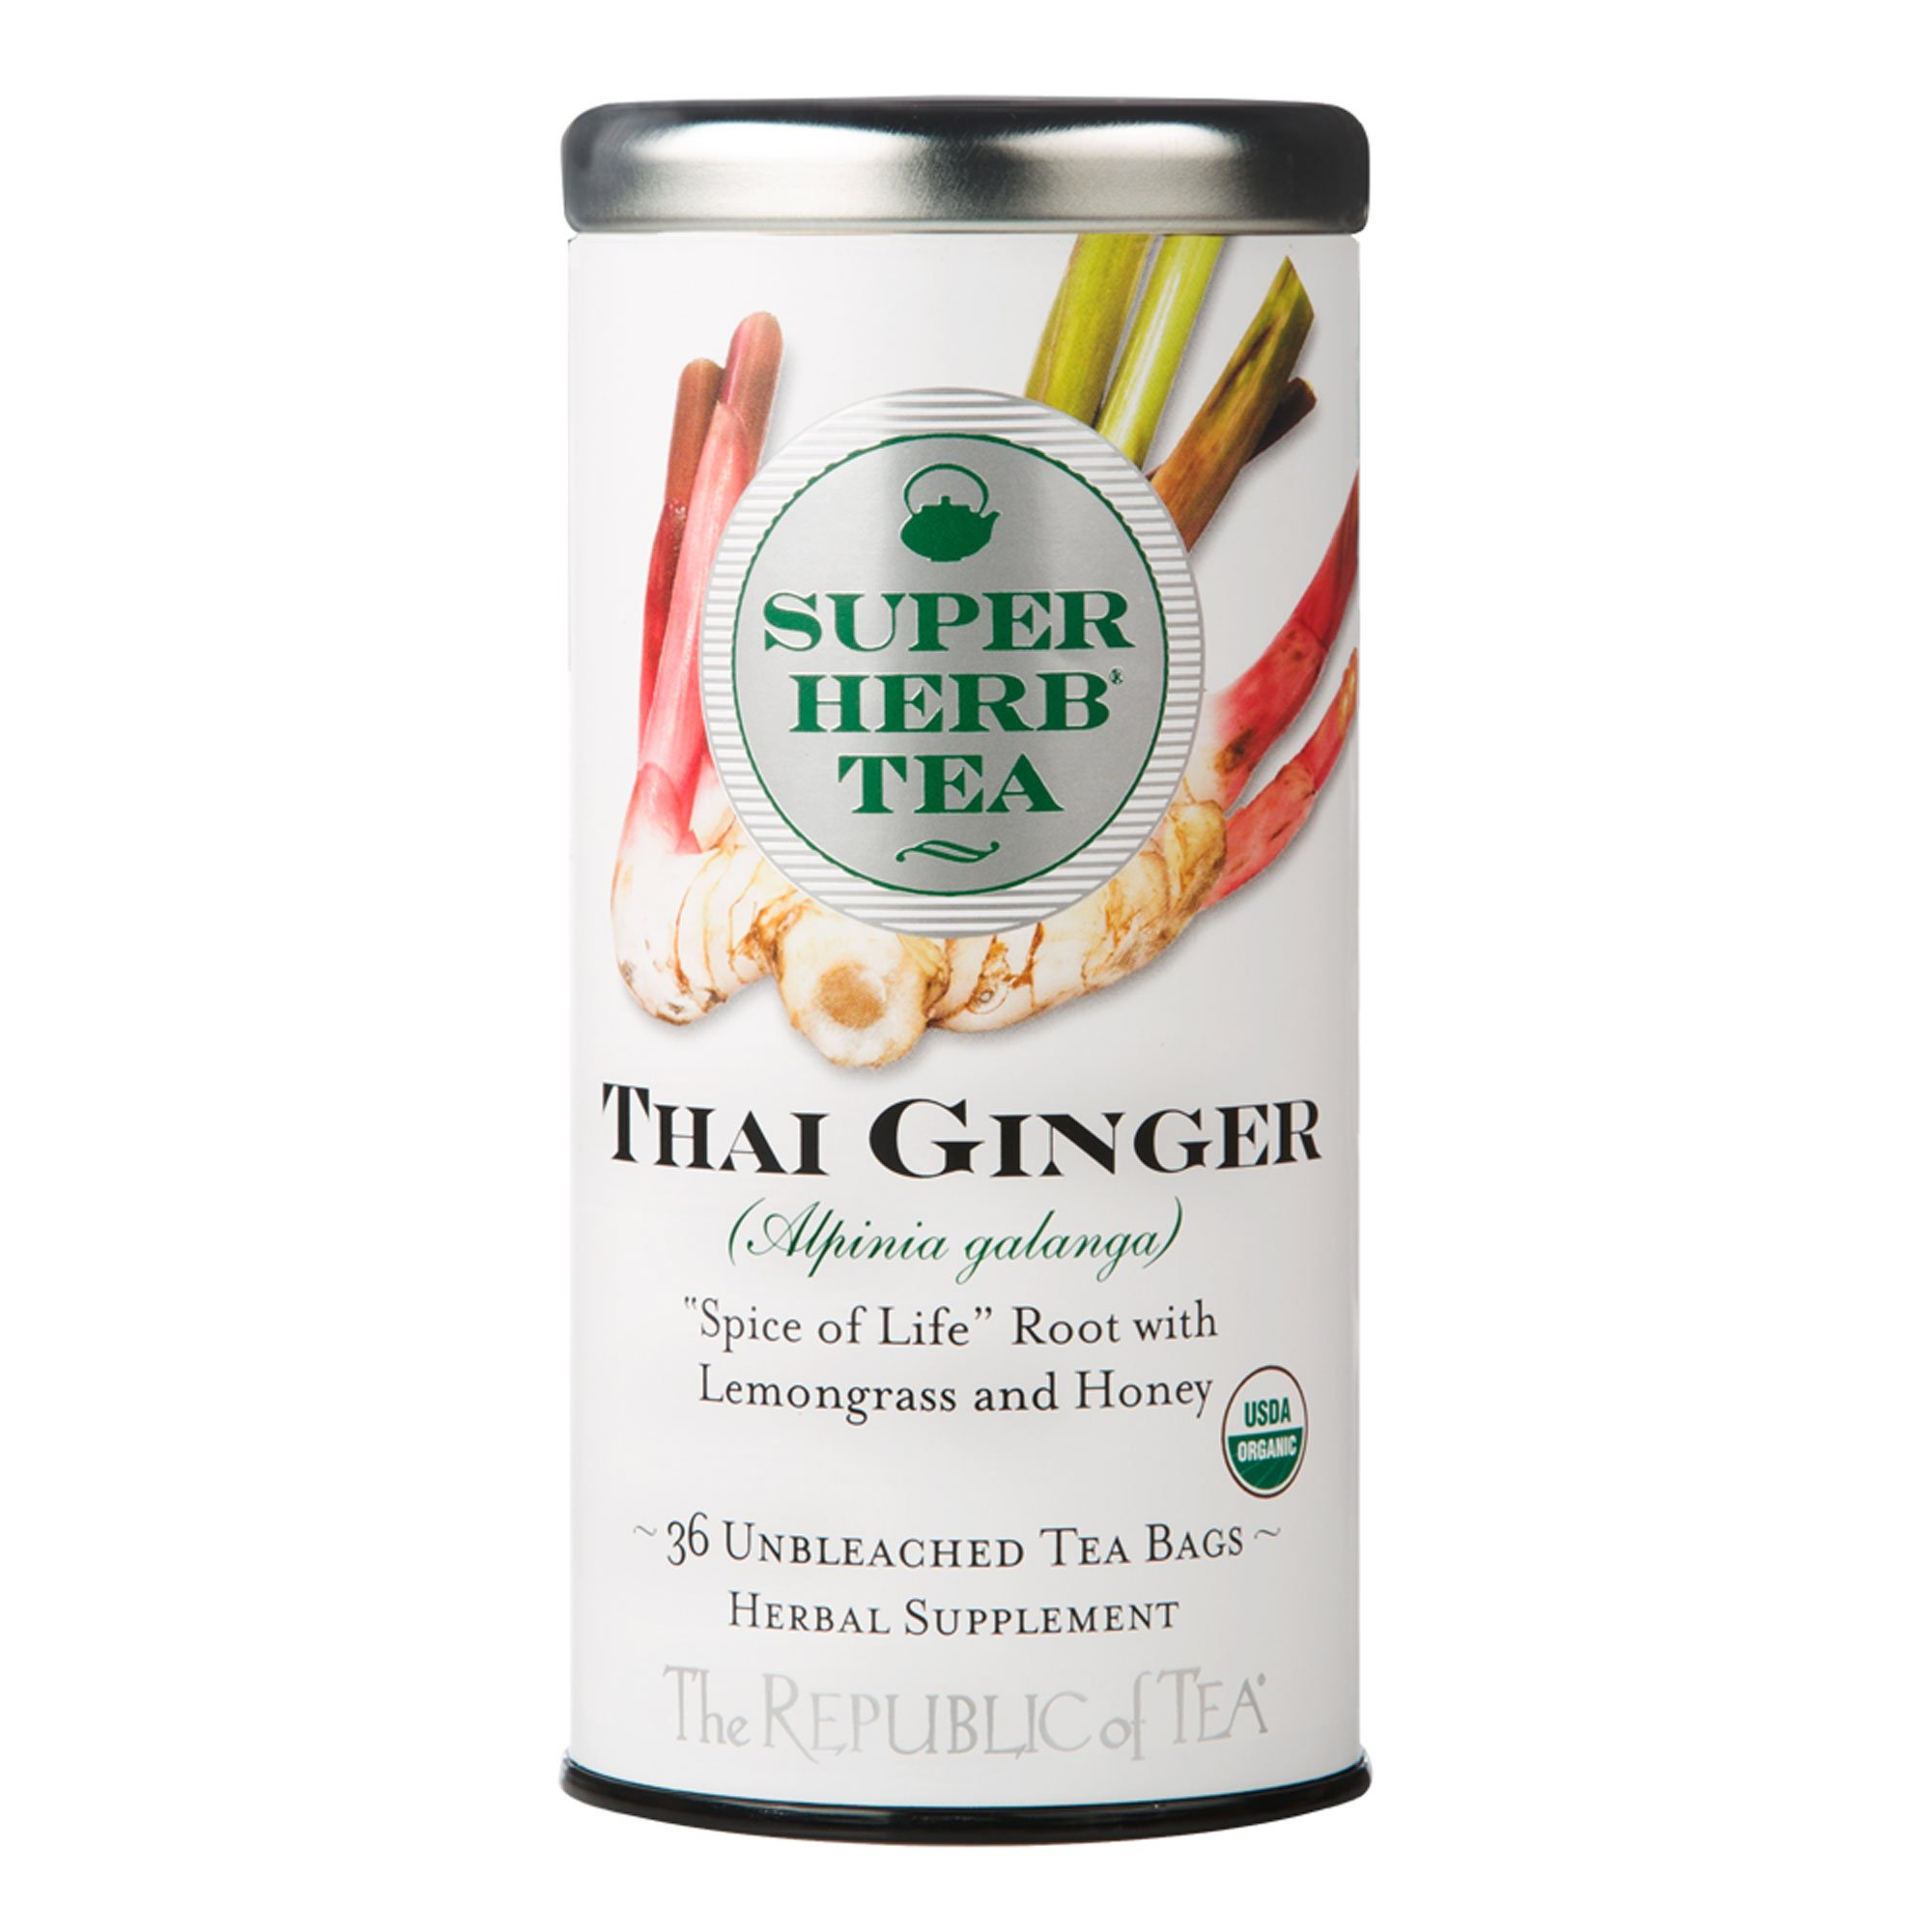 The Republic Of Tea Organic Thai Ginger Superherb Tea, 36 Tea Bags, Galangal Lemongrass Tea